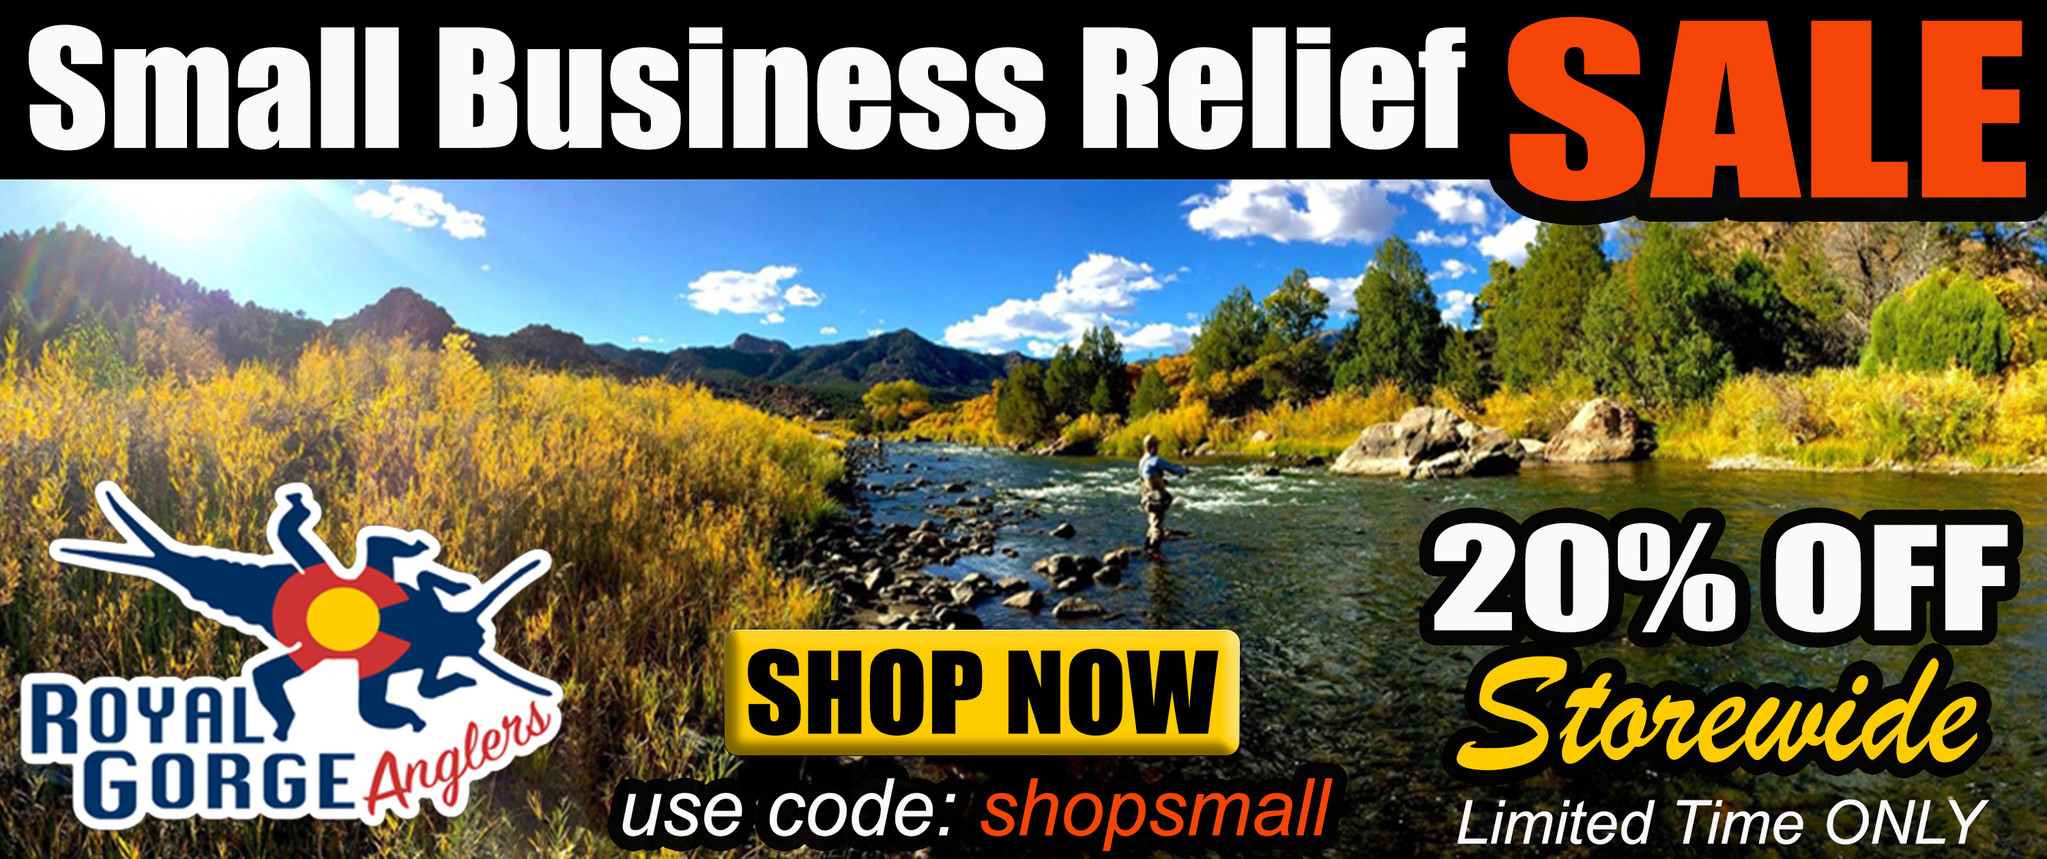 Small Business Relief Sale Fly Fishing